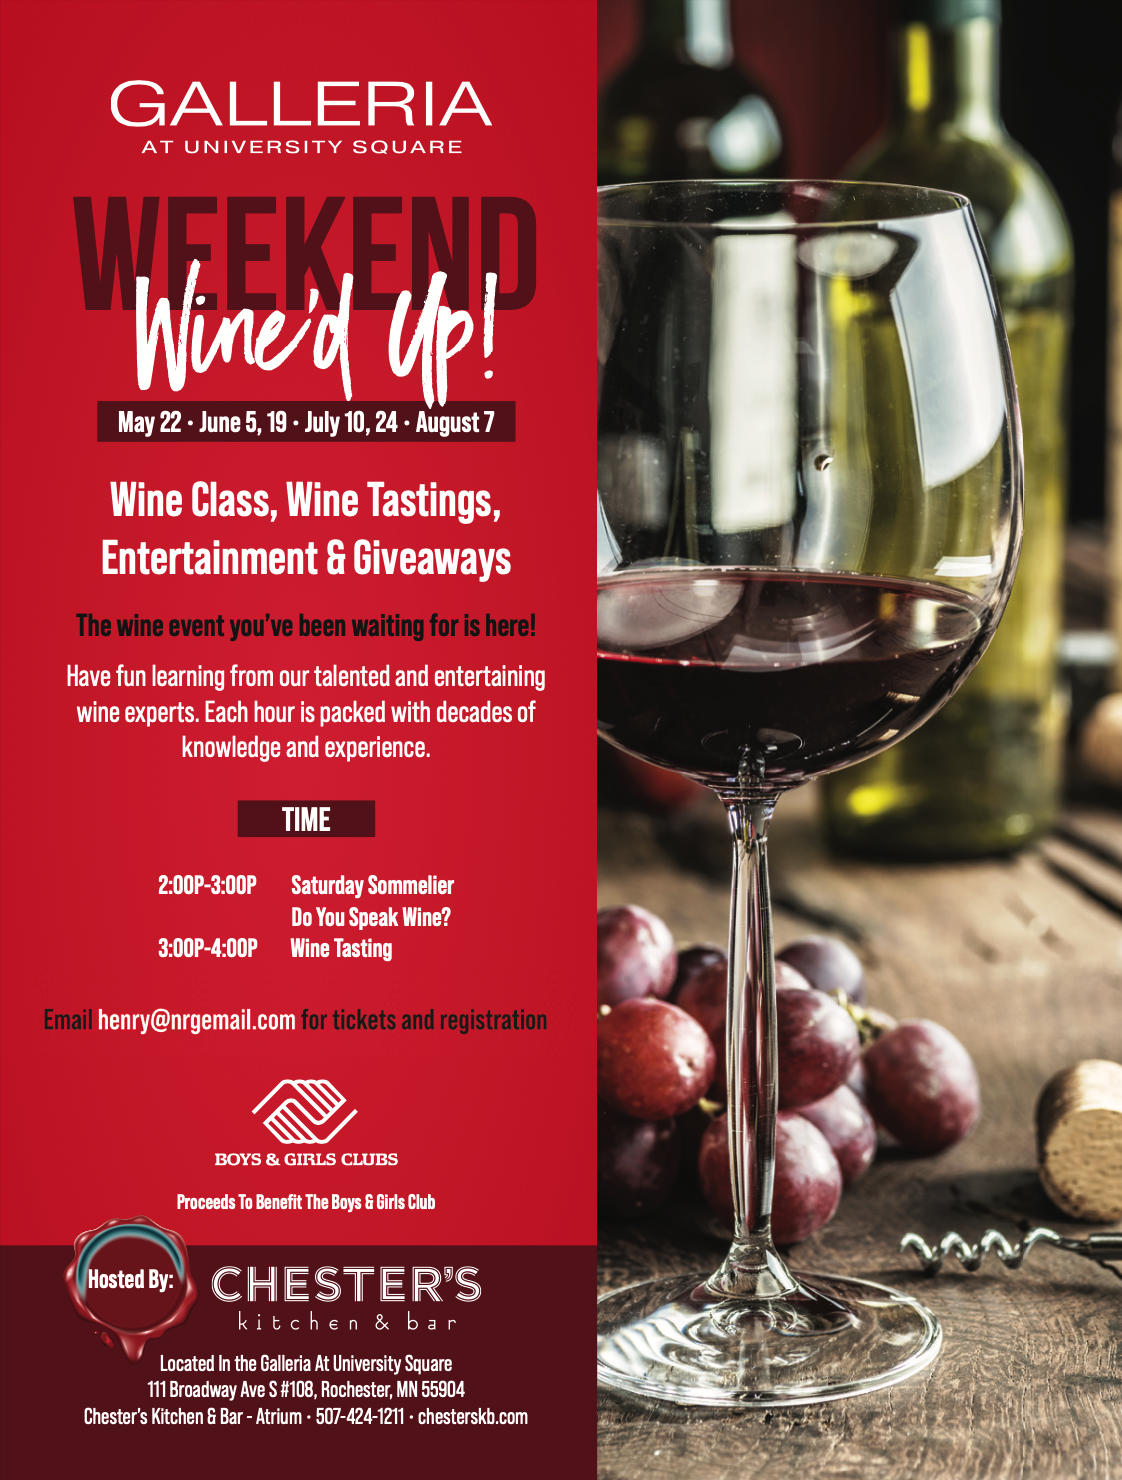 Weekend Wine'd Up —Wine Class, Wine Tastings, Entertainment and Giveaways —email henry@nrgemail for tickets and registration